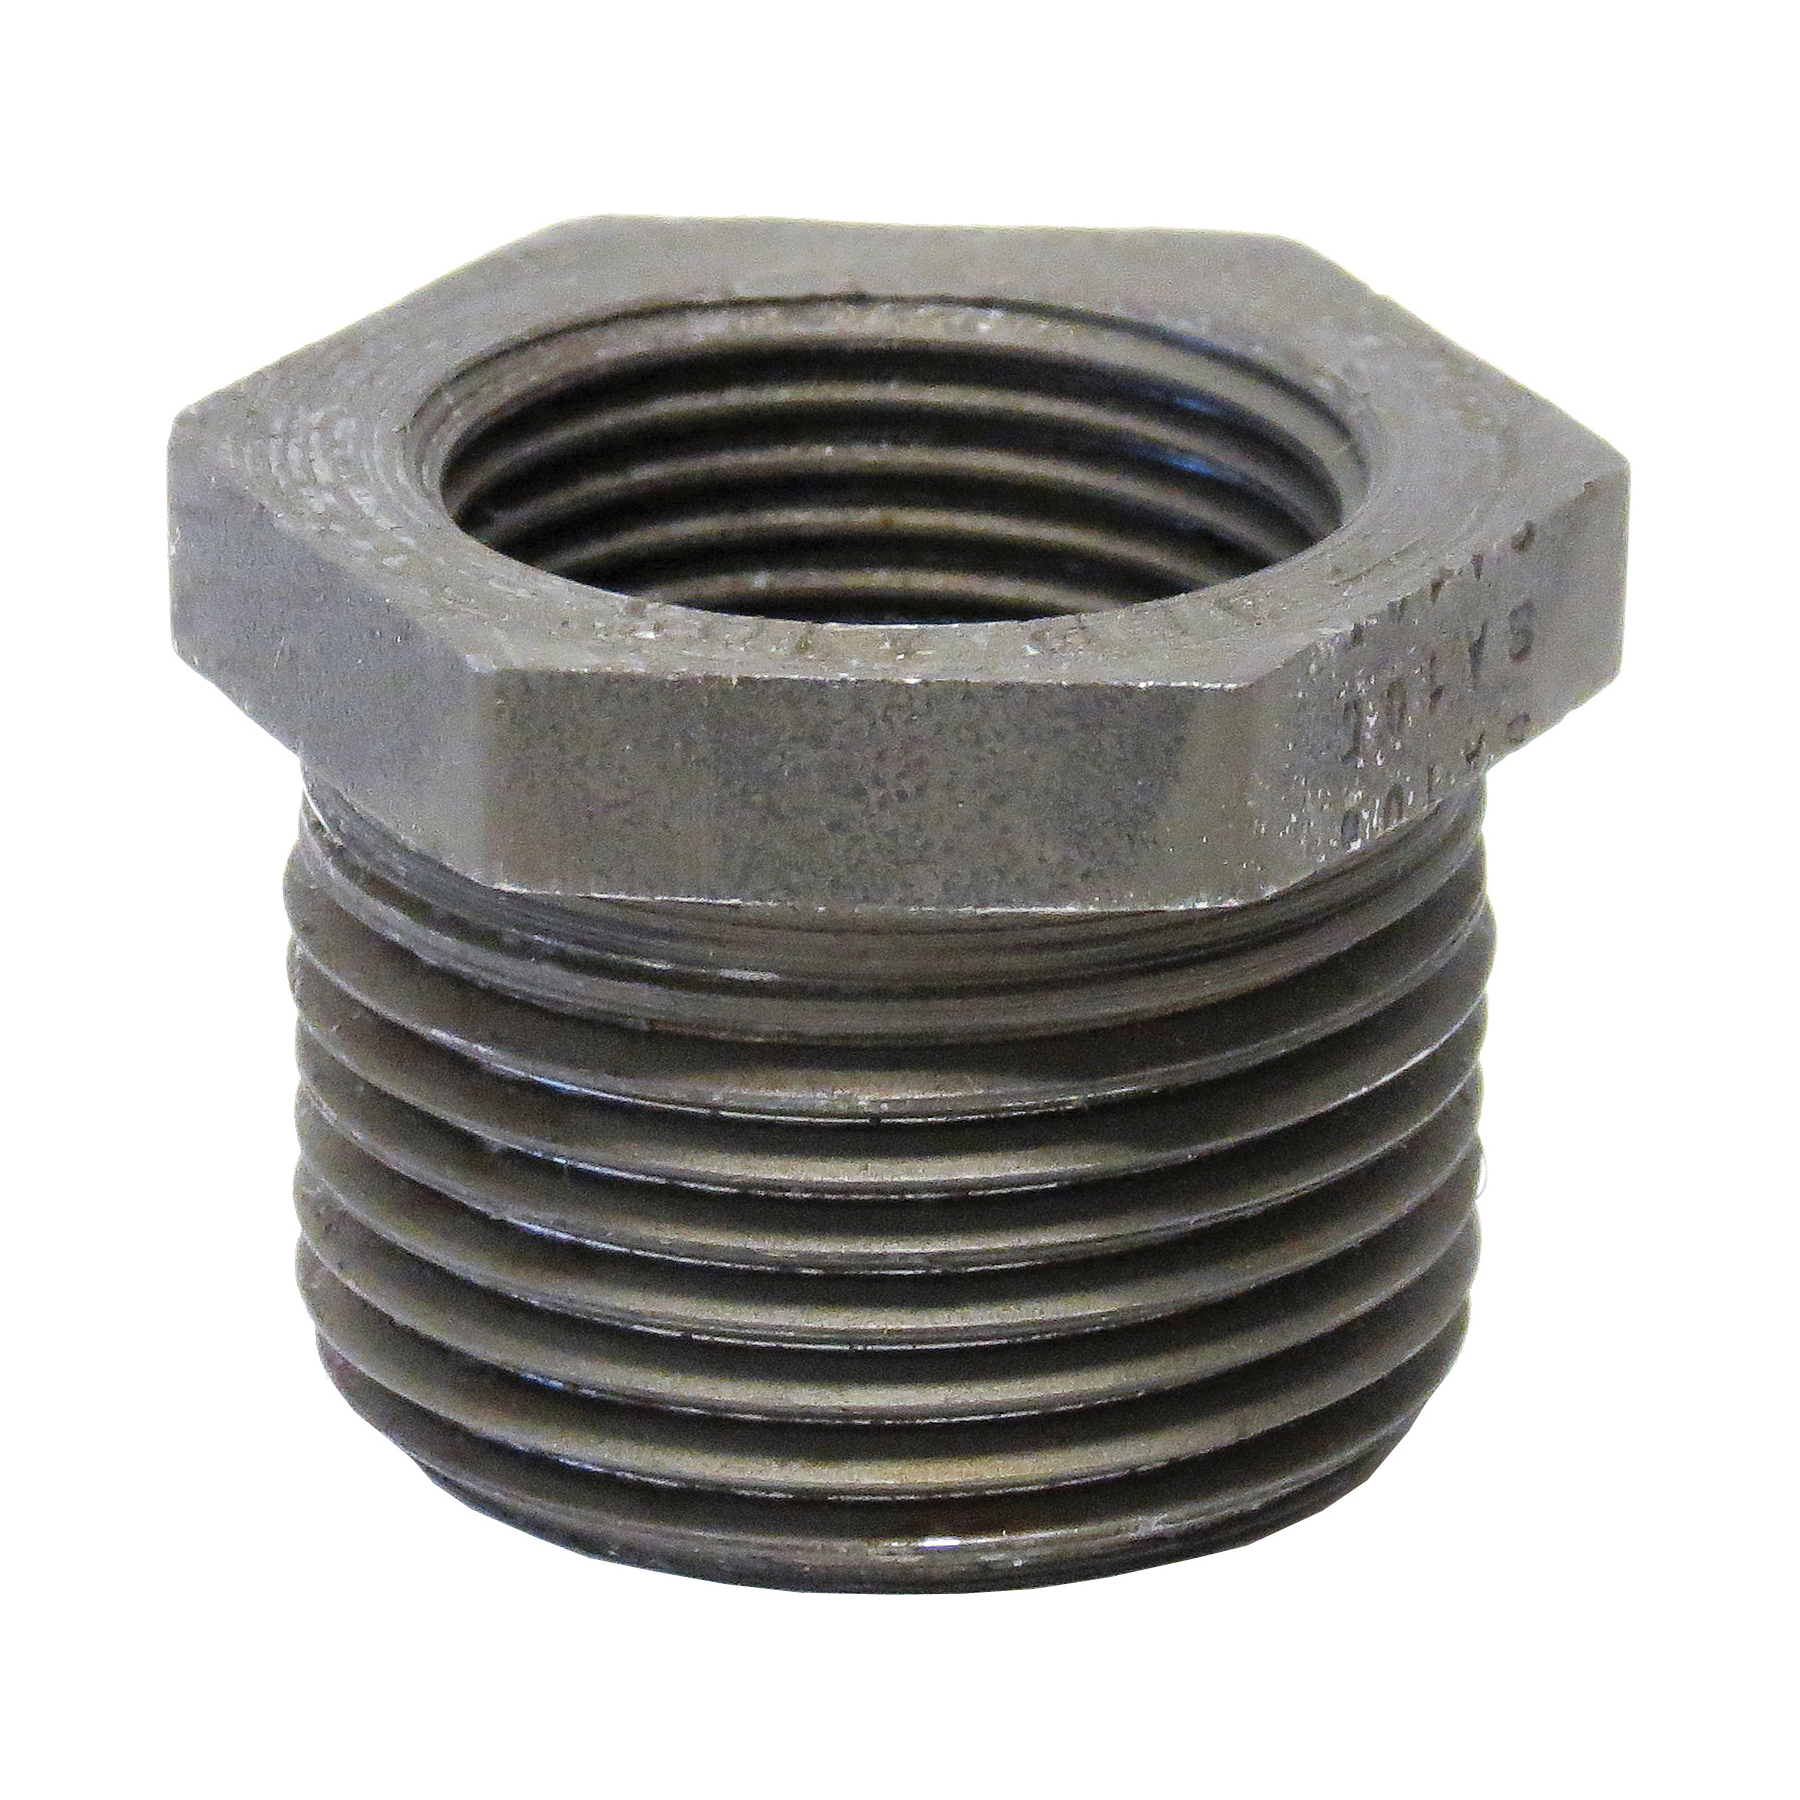 Anvil® 0361330103 FIG 2139 High Pressure Hex Head Bushing, 3/8 x 1/8 in Nominal, Steel, Black Oxide, Domestic